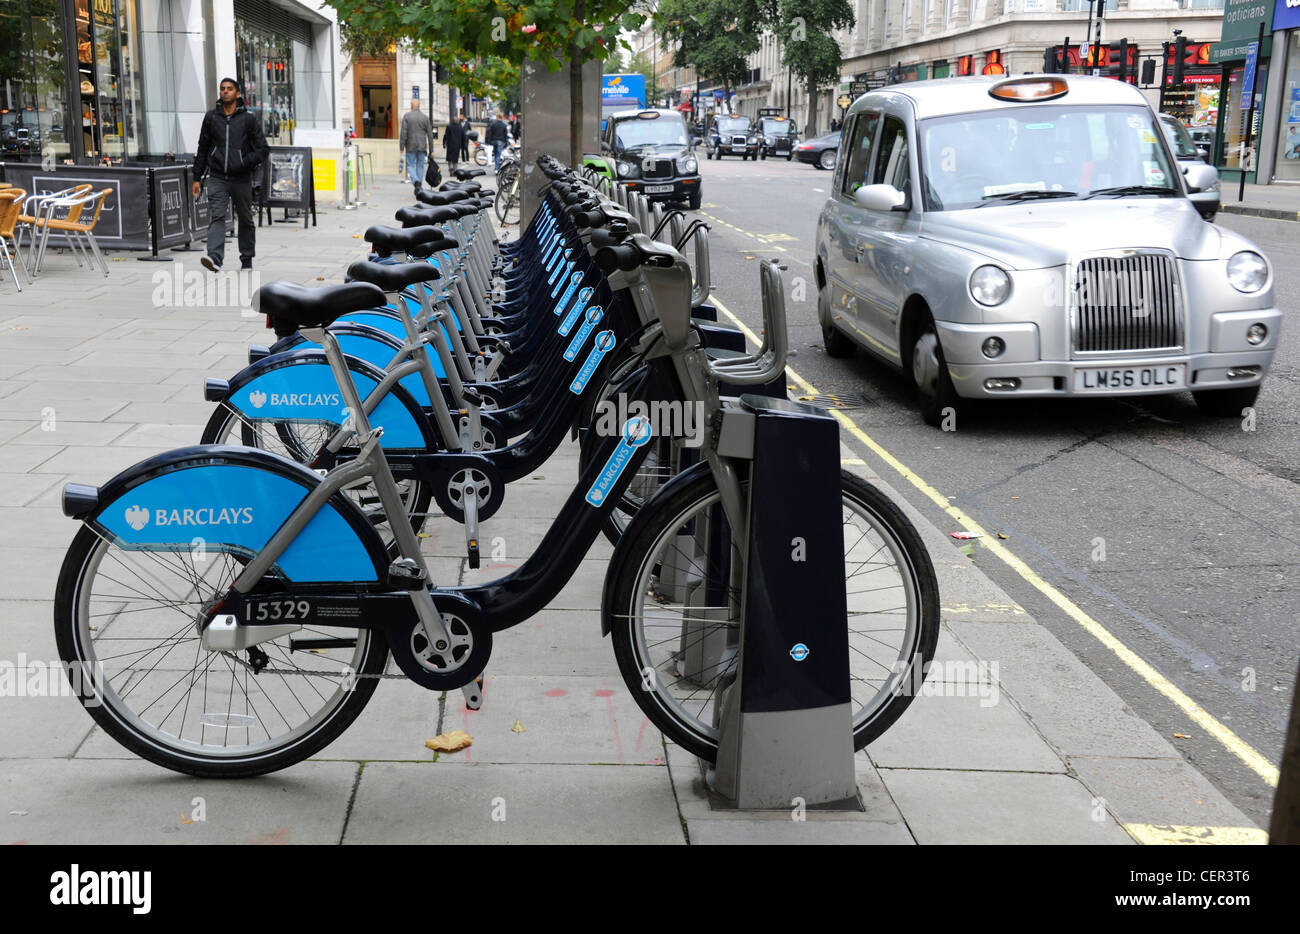 A Barclays Cycle Hire docking Station on Baker Street. Stock Photo